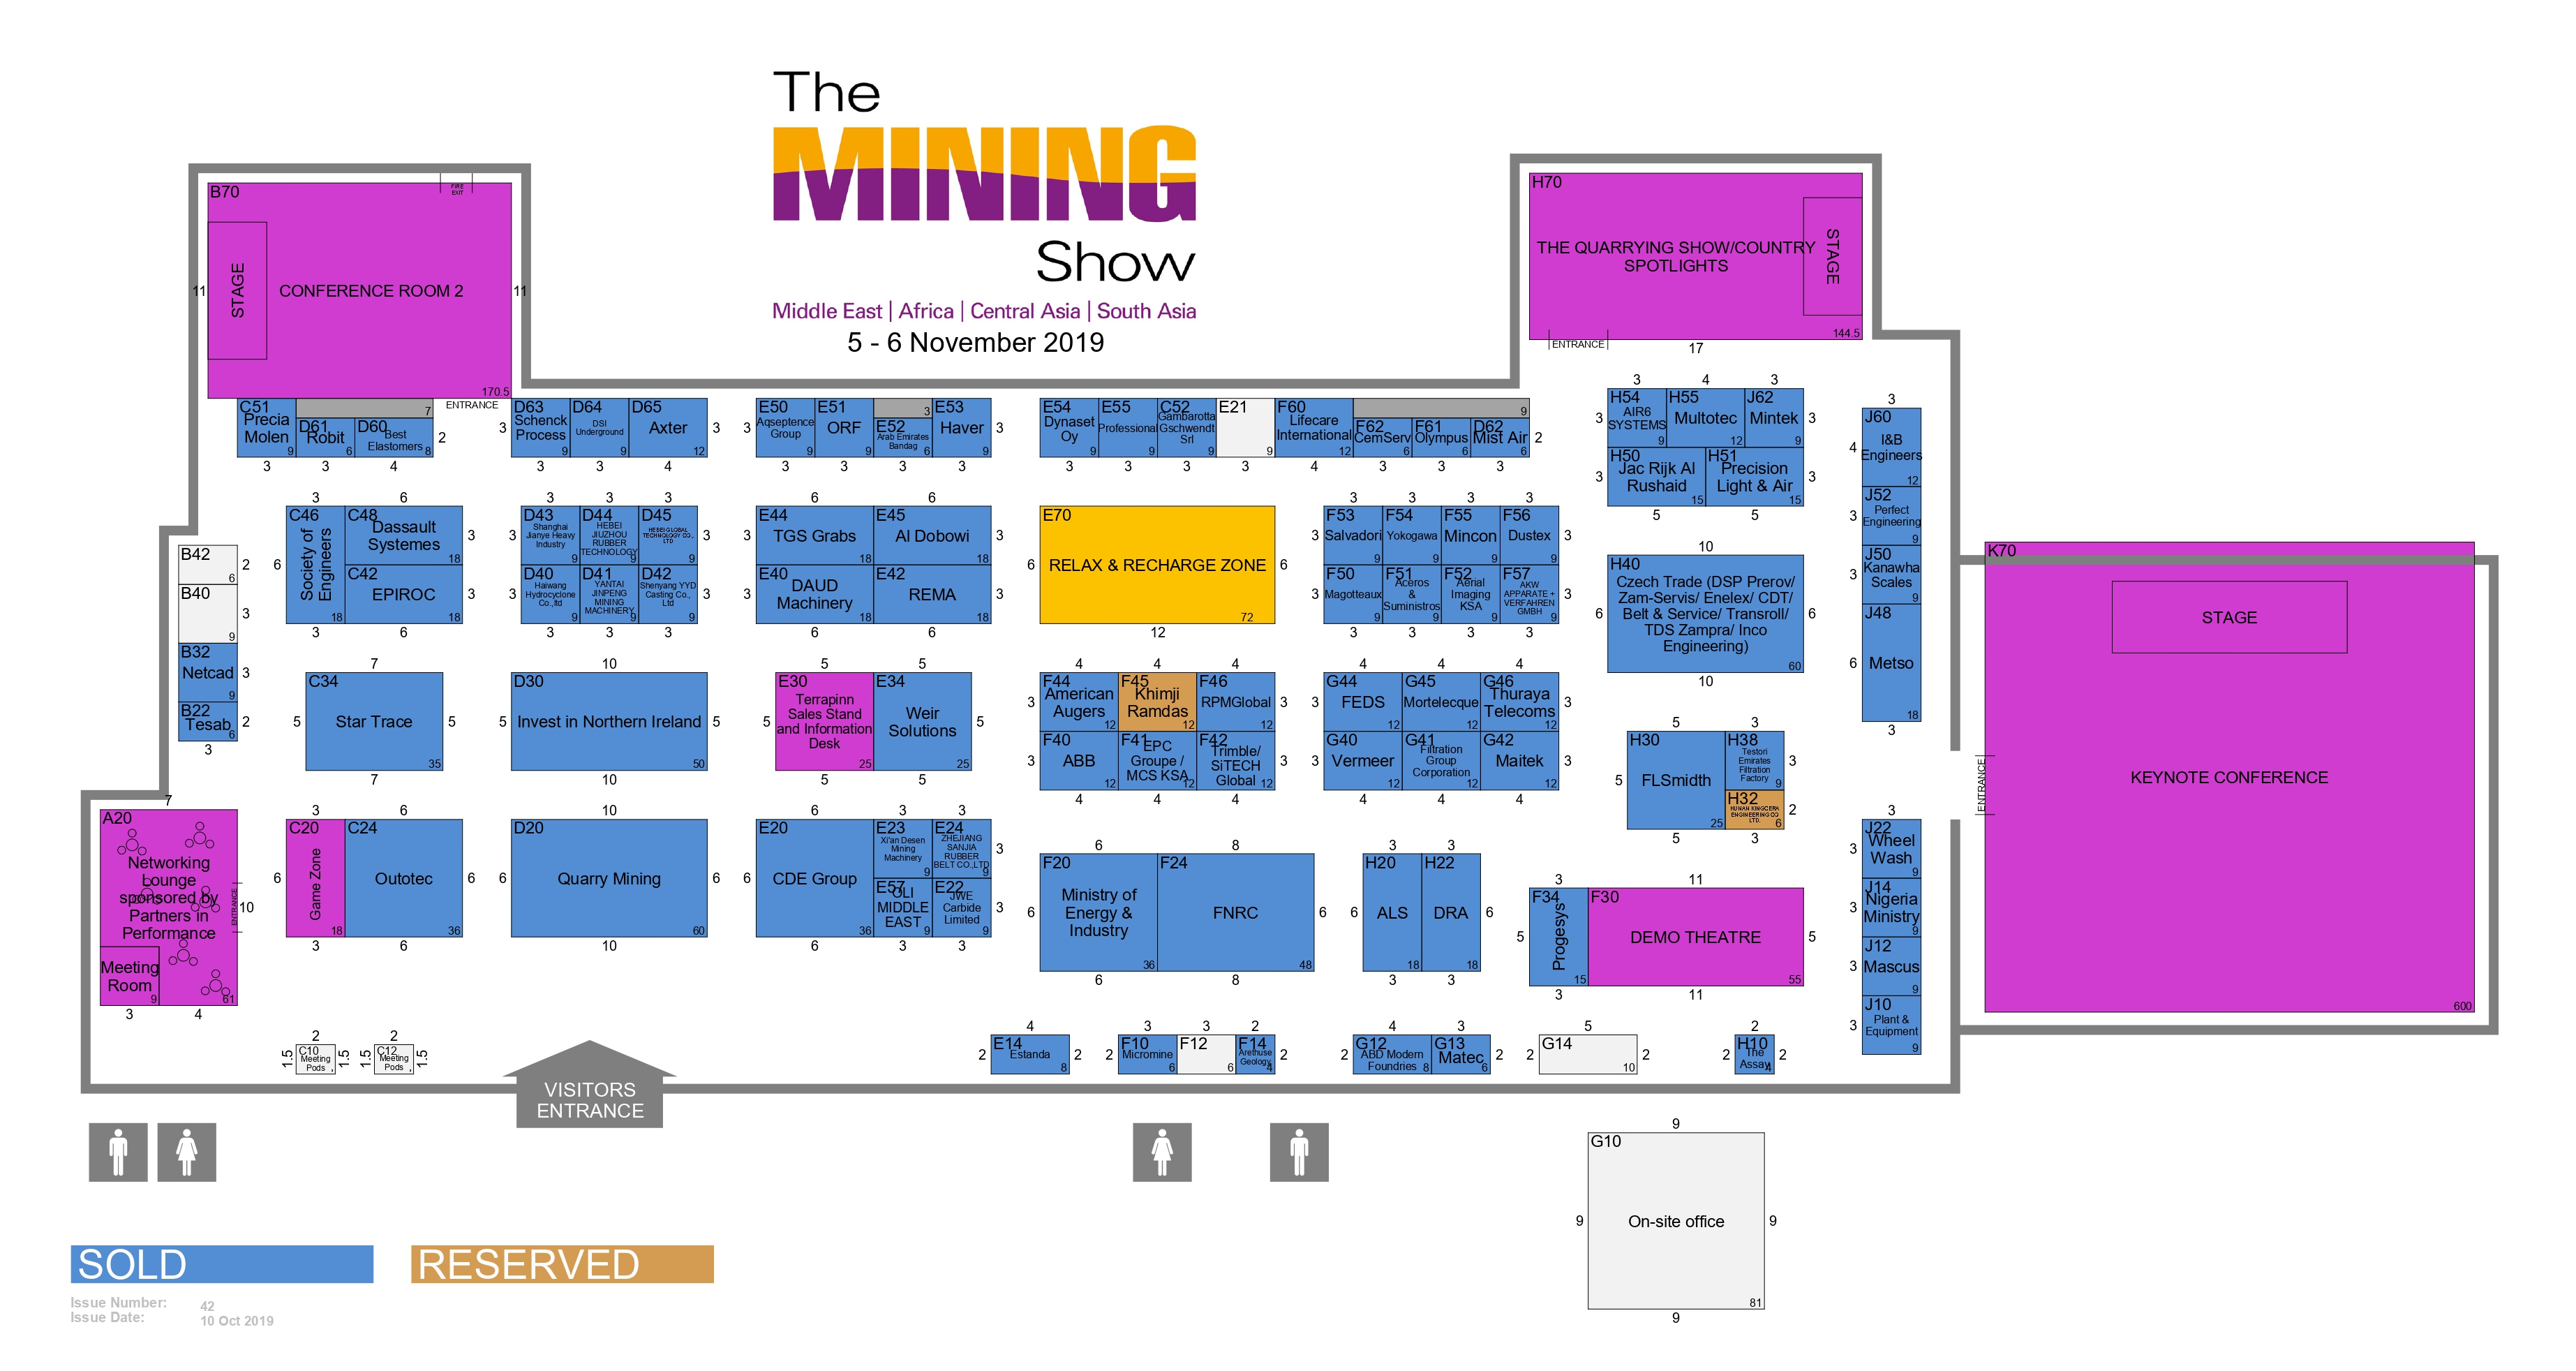 The Mining Show 2019